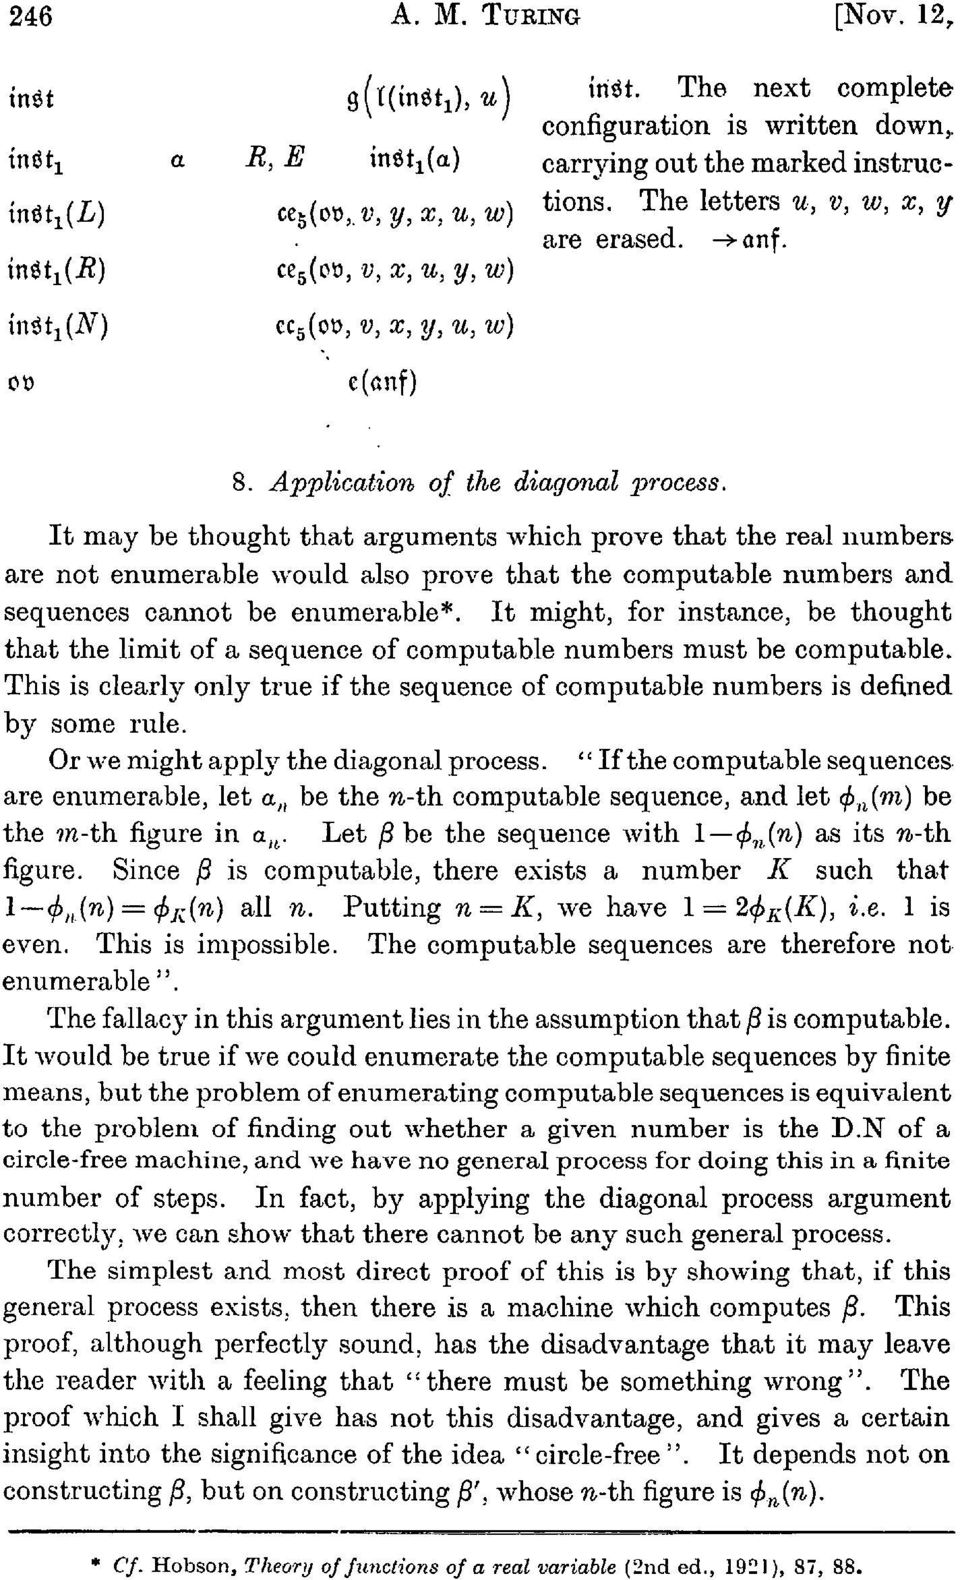 It may be thought that arguments which prove that the real numbers are not enumerable would also prove that the computable numbers and sequences cannot be enumerable*.